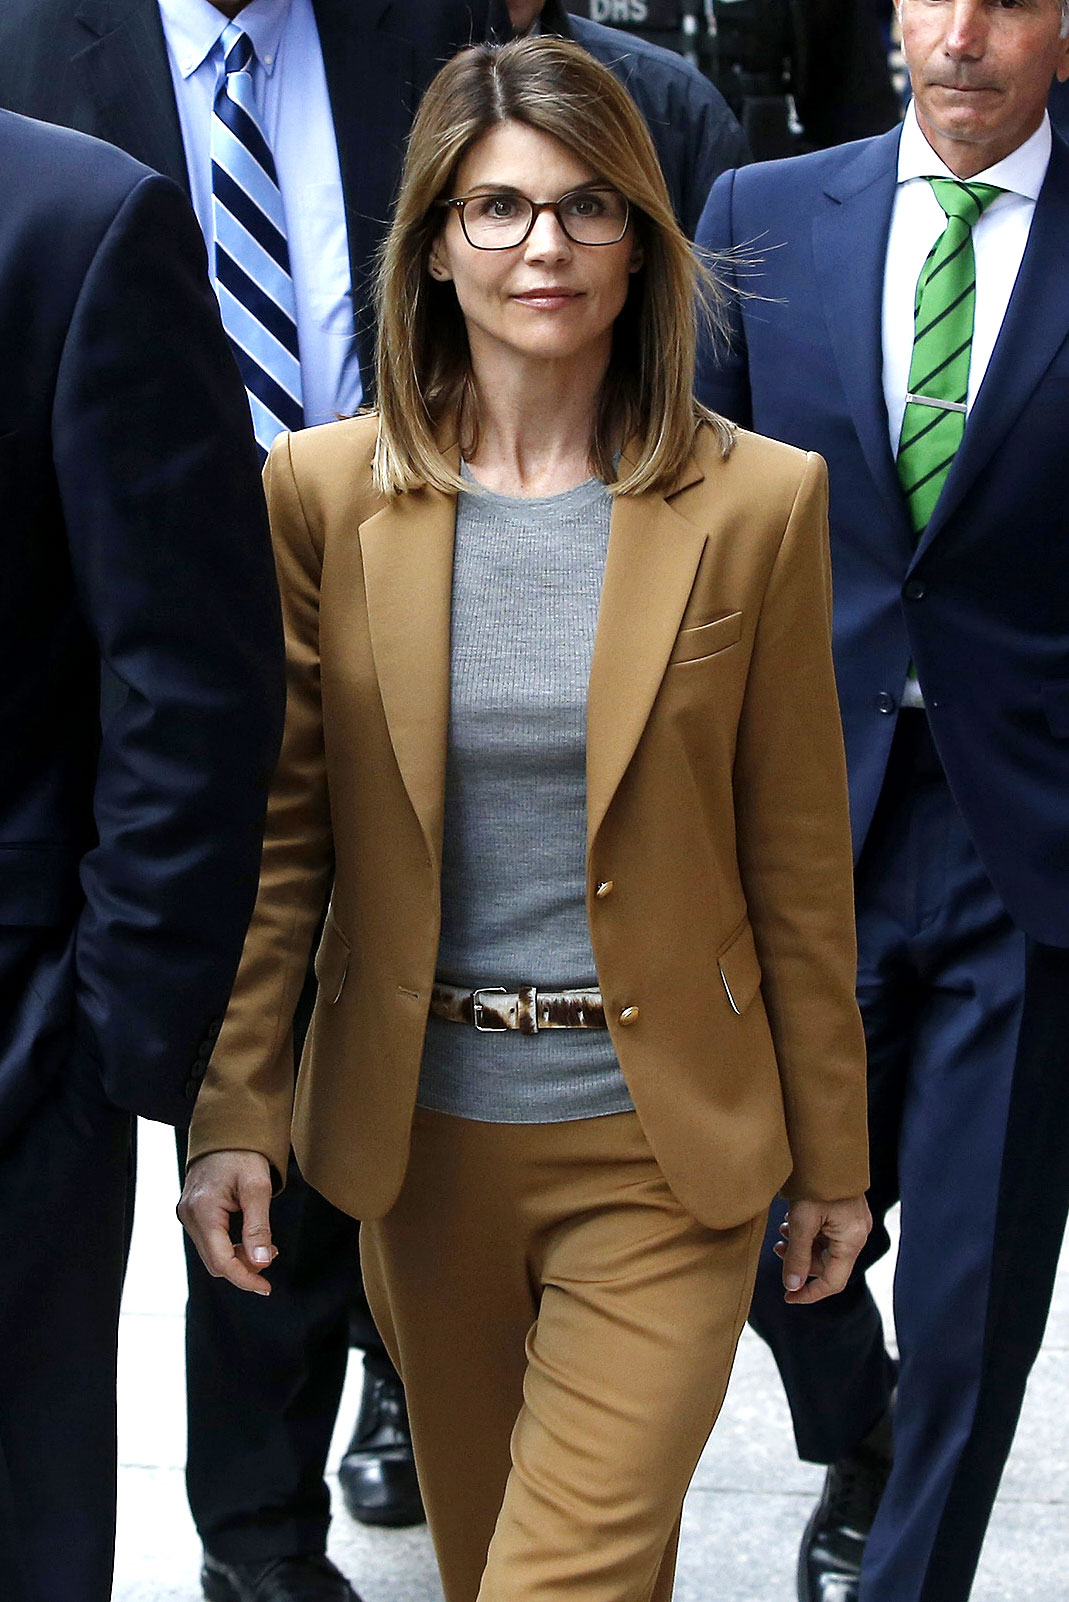 Lori Loughlin Could Spend Years Behind Bars - Lori Loughlin leaves the John Joseph Moakley United States Courthouse on April 3, 2019 in Boston, Massachusetts.